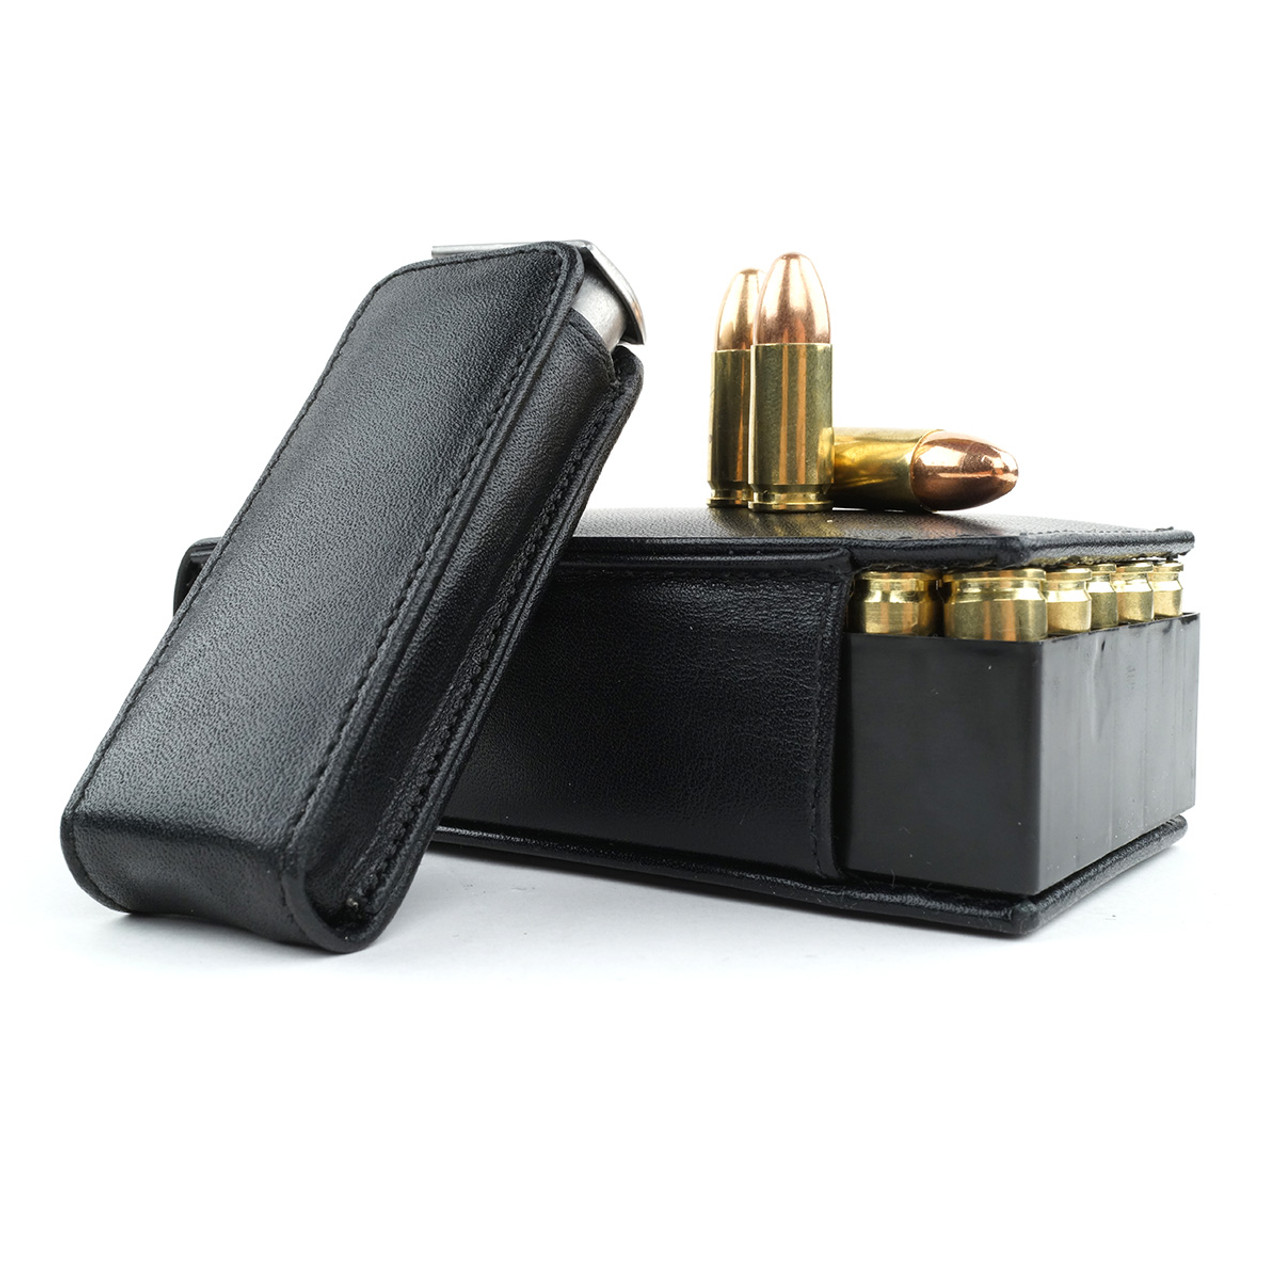 Kahr P40 Leather Bullet Brick